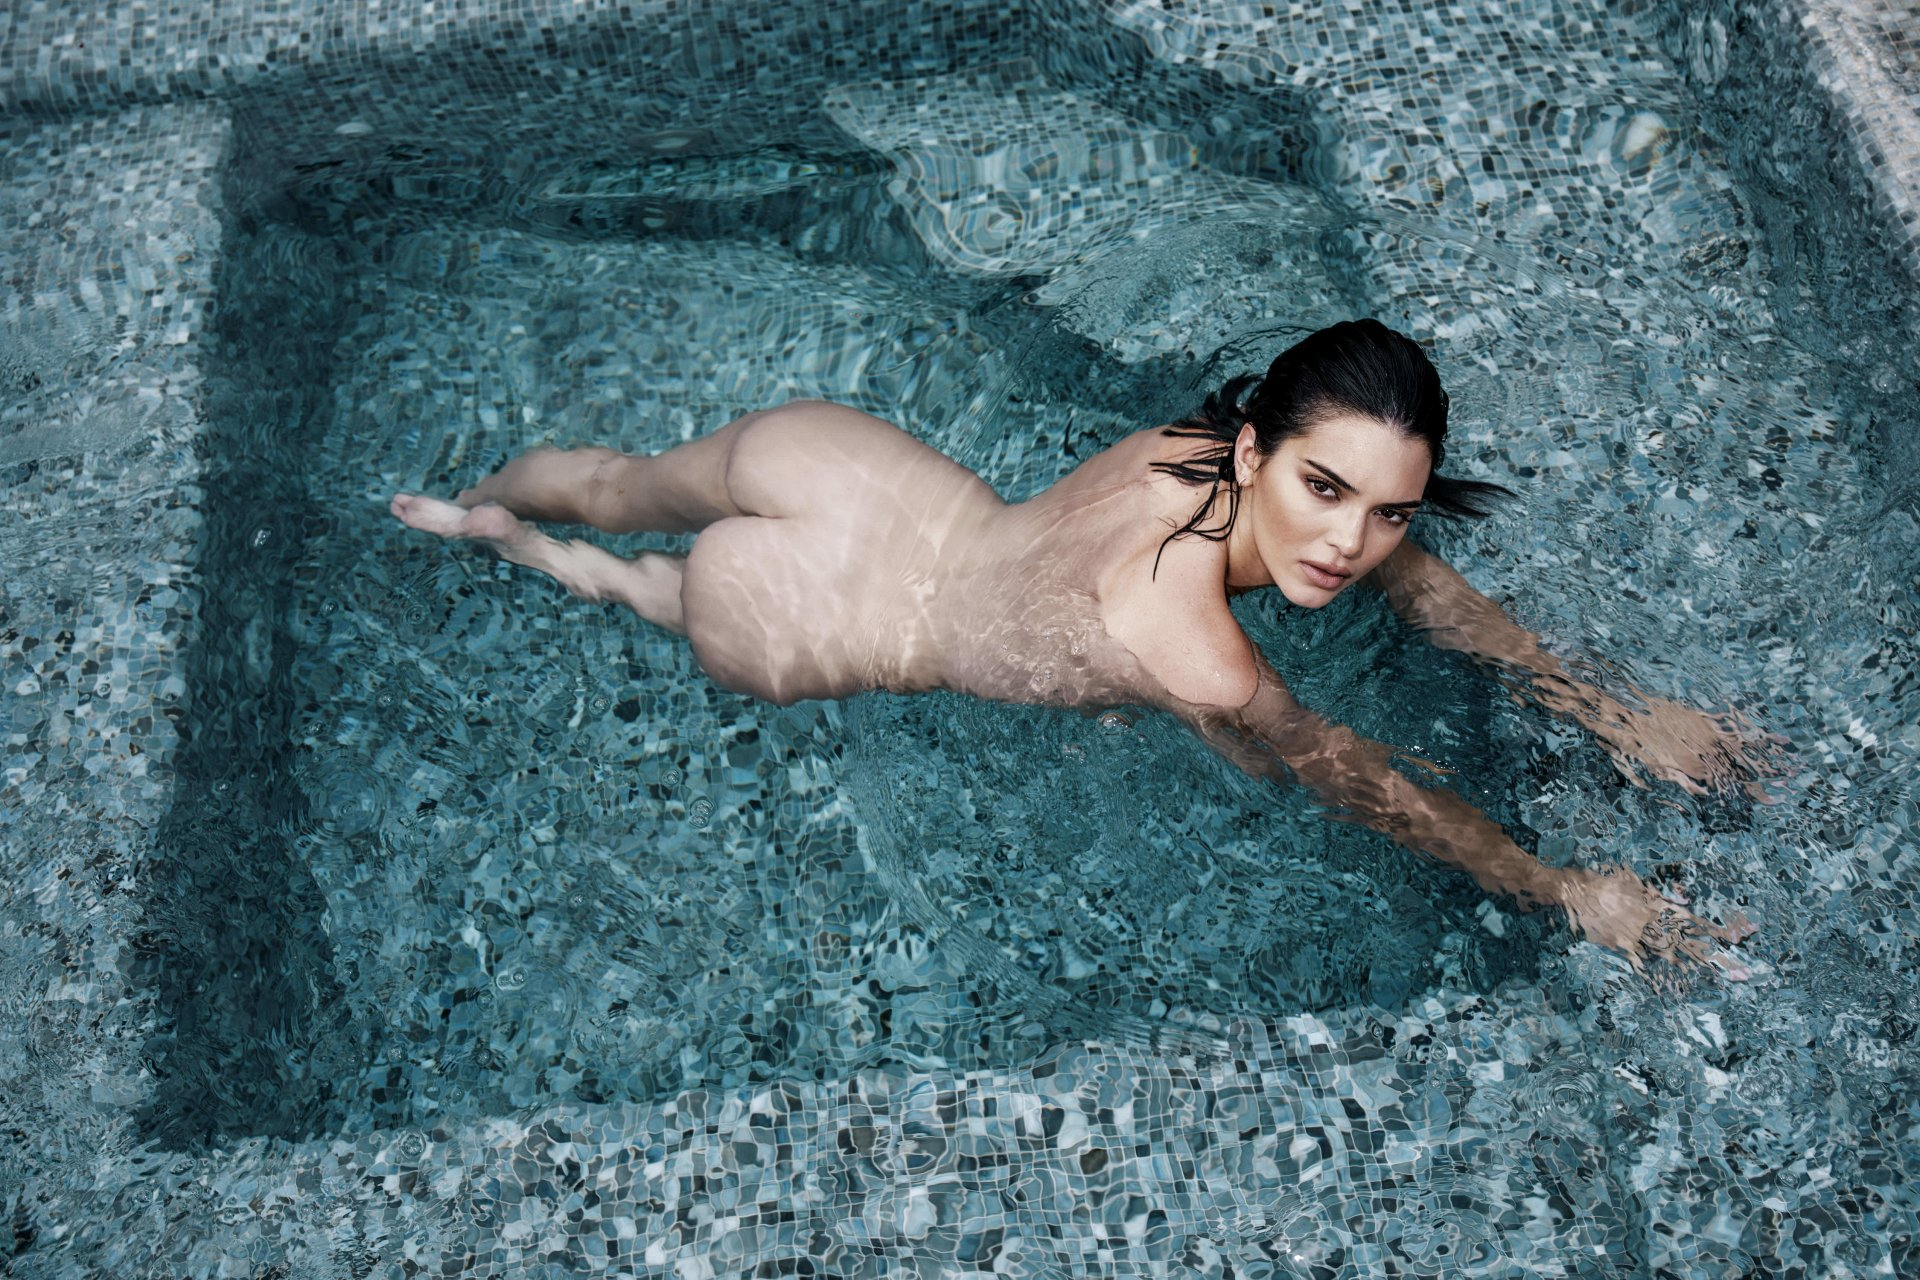 Kendall-Jenner-Nude-TheFappeningBlog.com-3.jpg